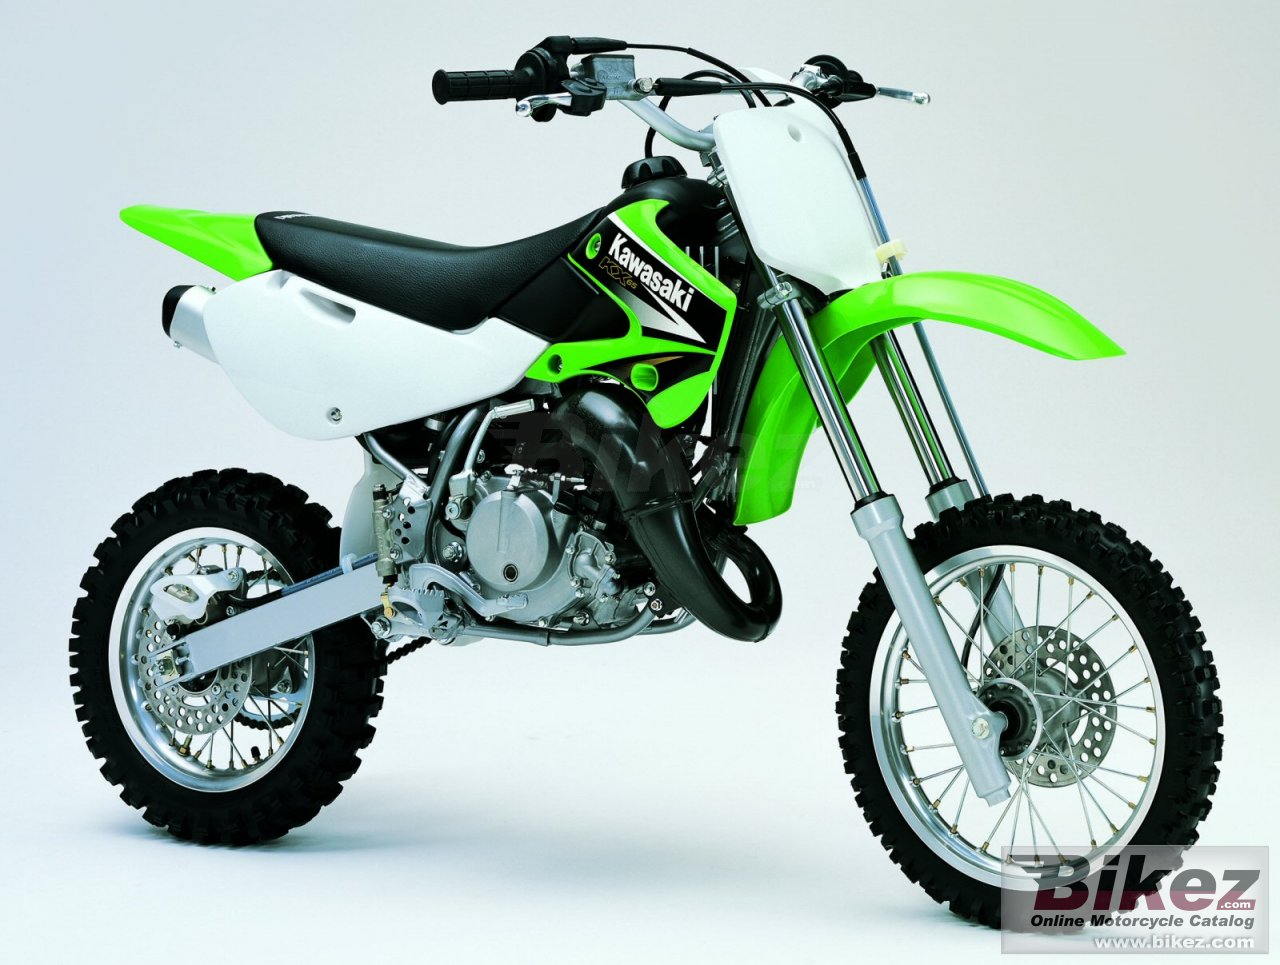 Big Kawasaki kx 65 picture and wallpaper from Bikez.com